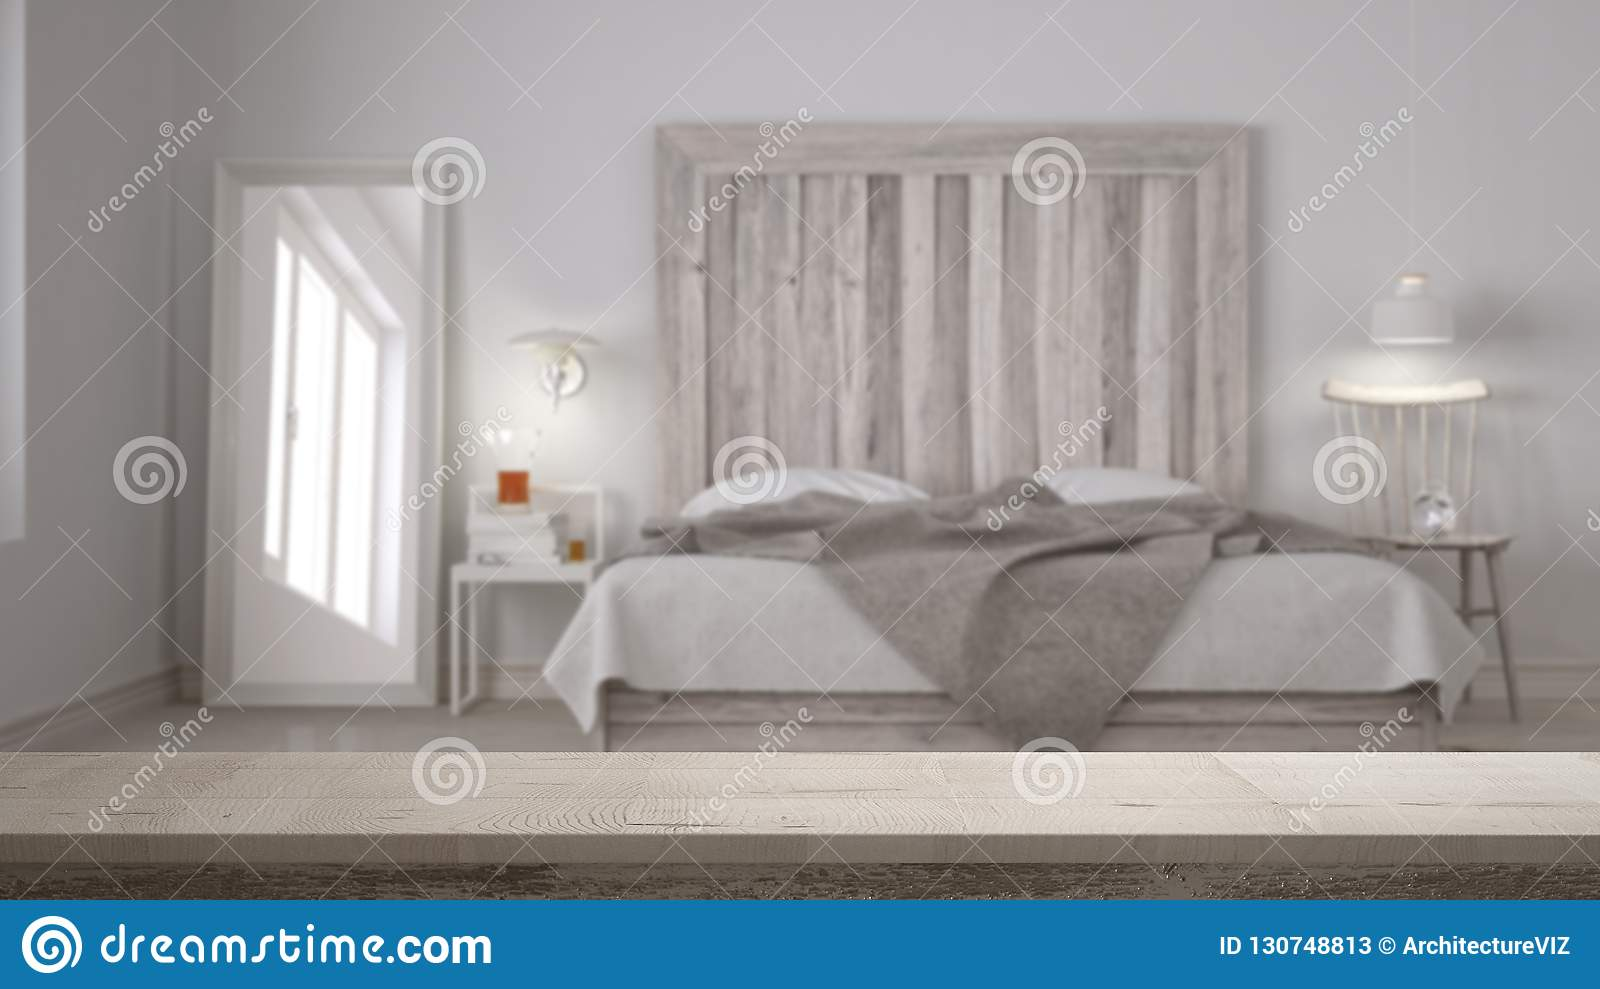 Wooden Vintage Table Top Or Shelf Closeup Zen Mood Over Blurred Scandinavian Bedroom With Wooden Headboard White Architecture Stock Image Image Of Mood White 130748813